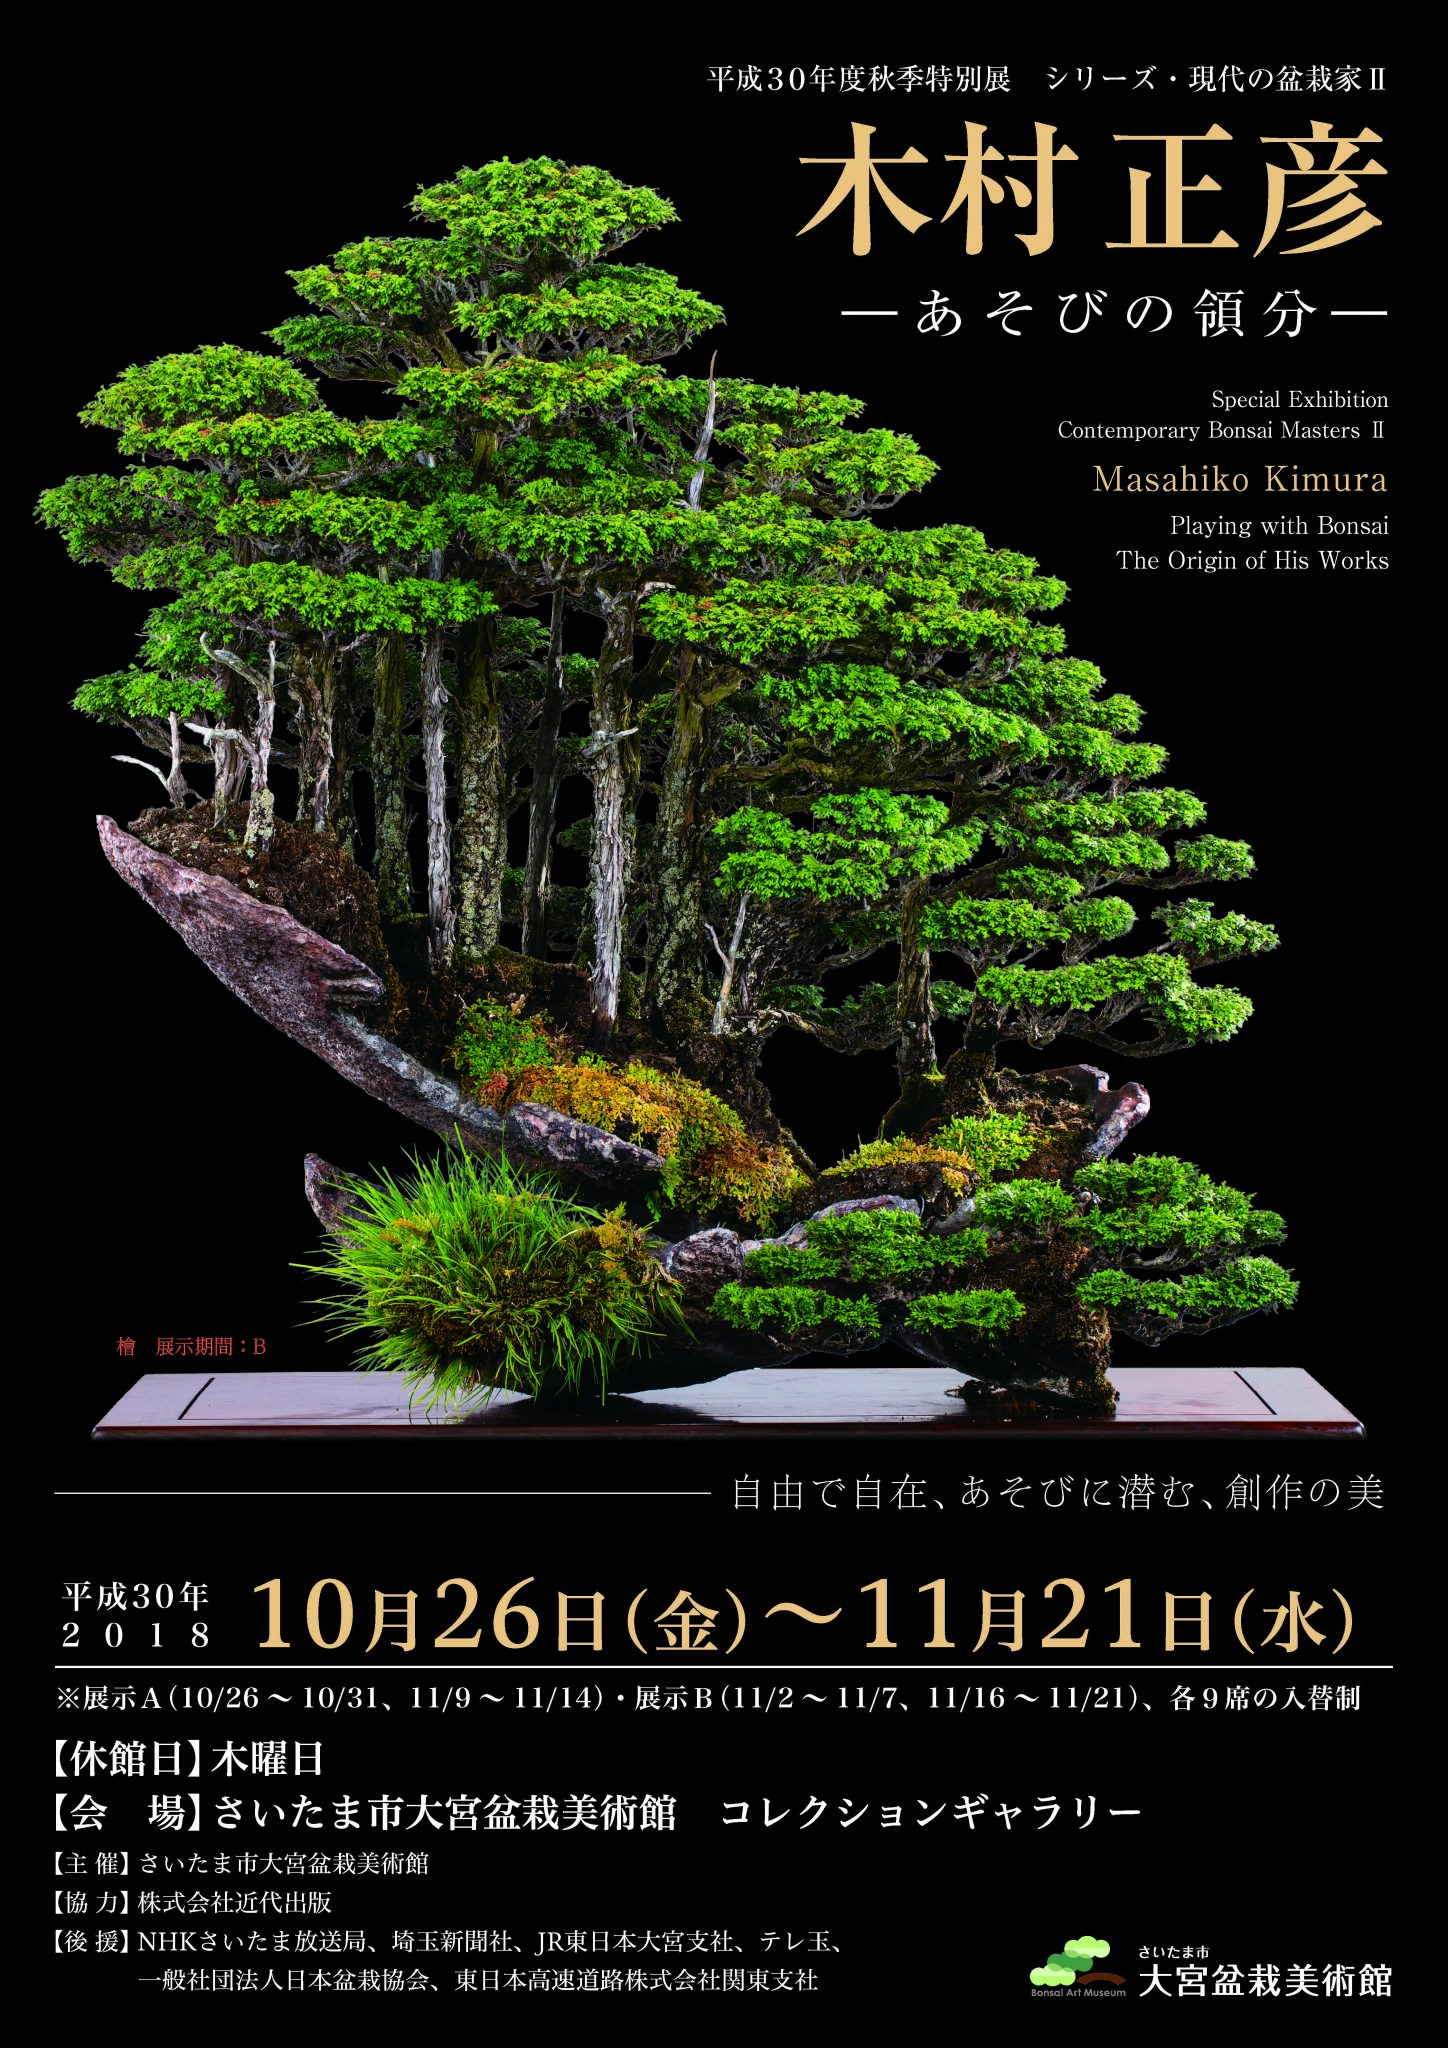 Special Exhibition: Contemporary Bonsai Masters Ⅱ: Masahiko Kimura; Playing with Bonsai, the Origin of His Works